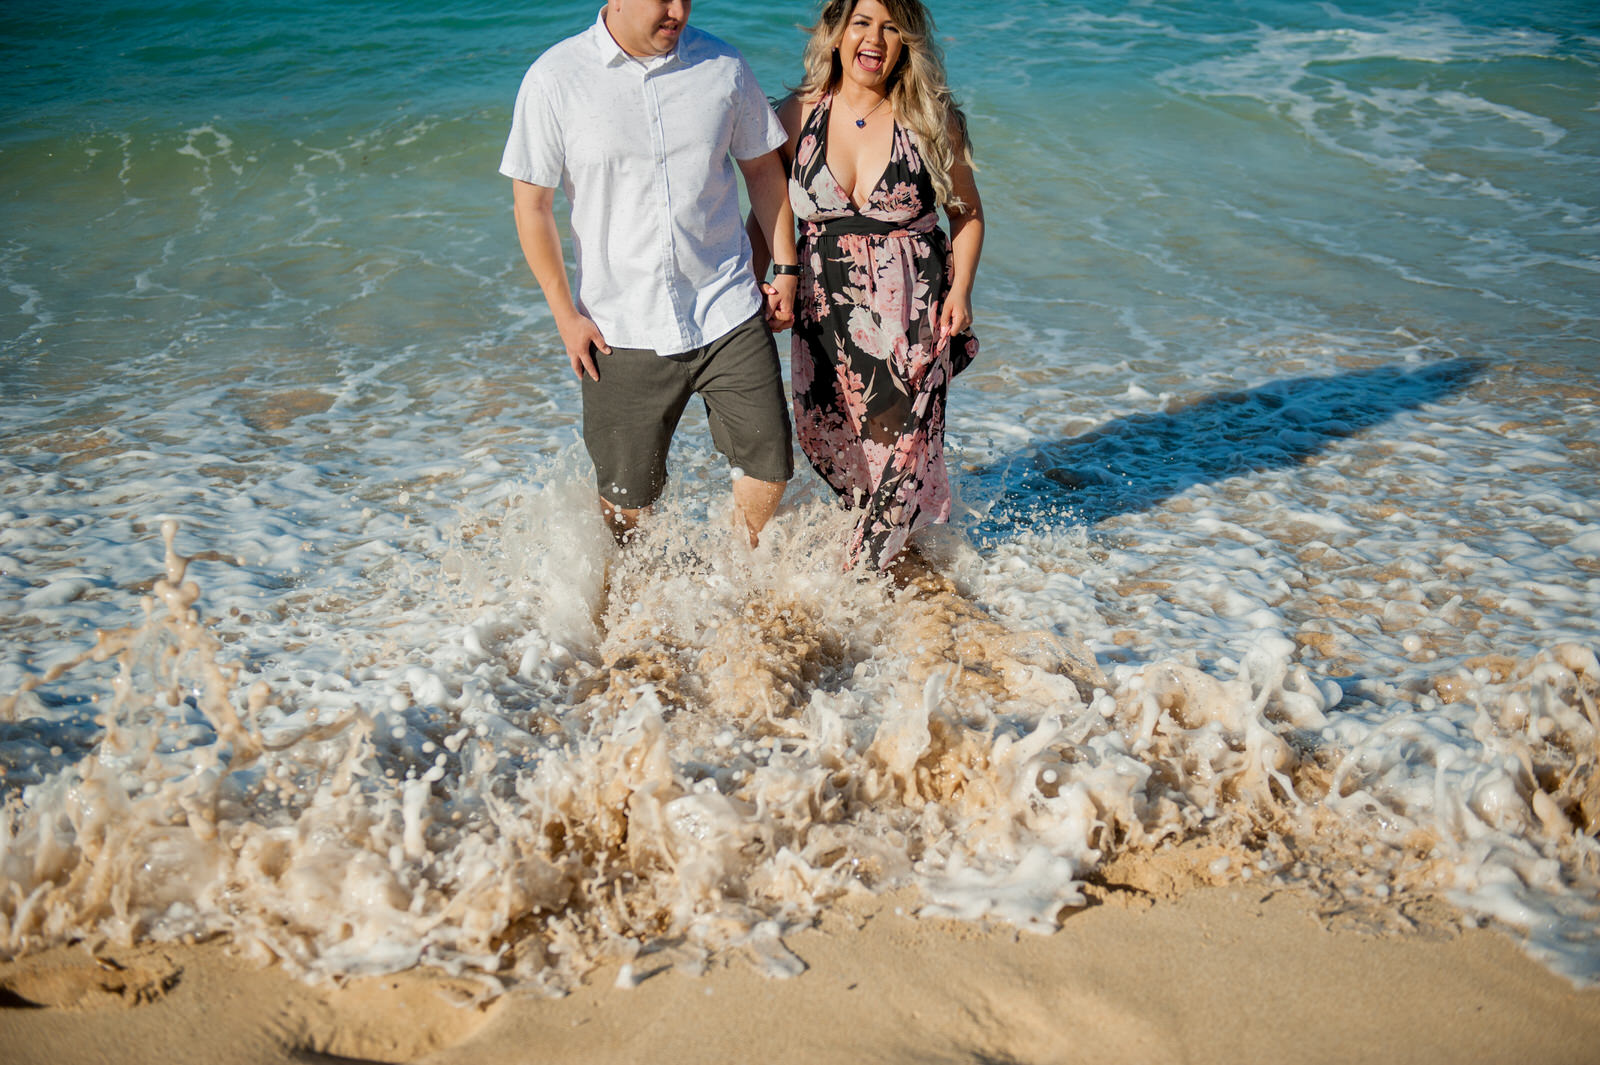 Couple getting splashed by wave